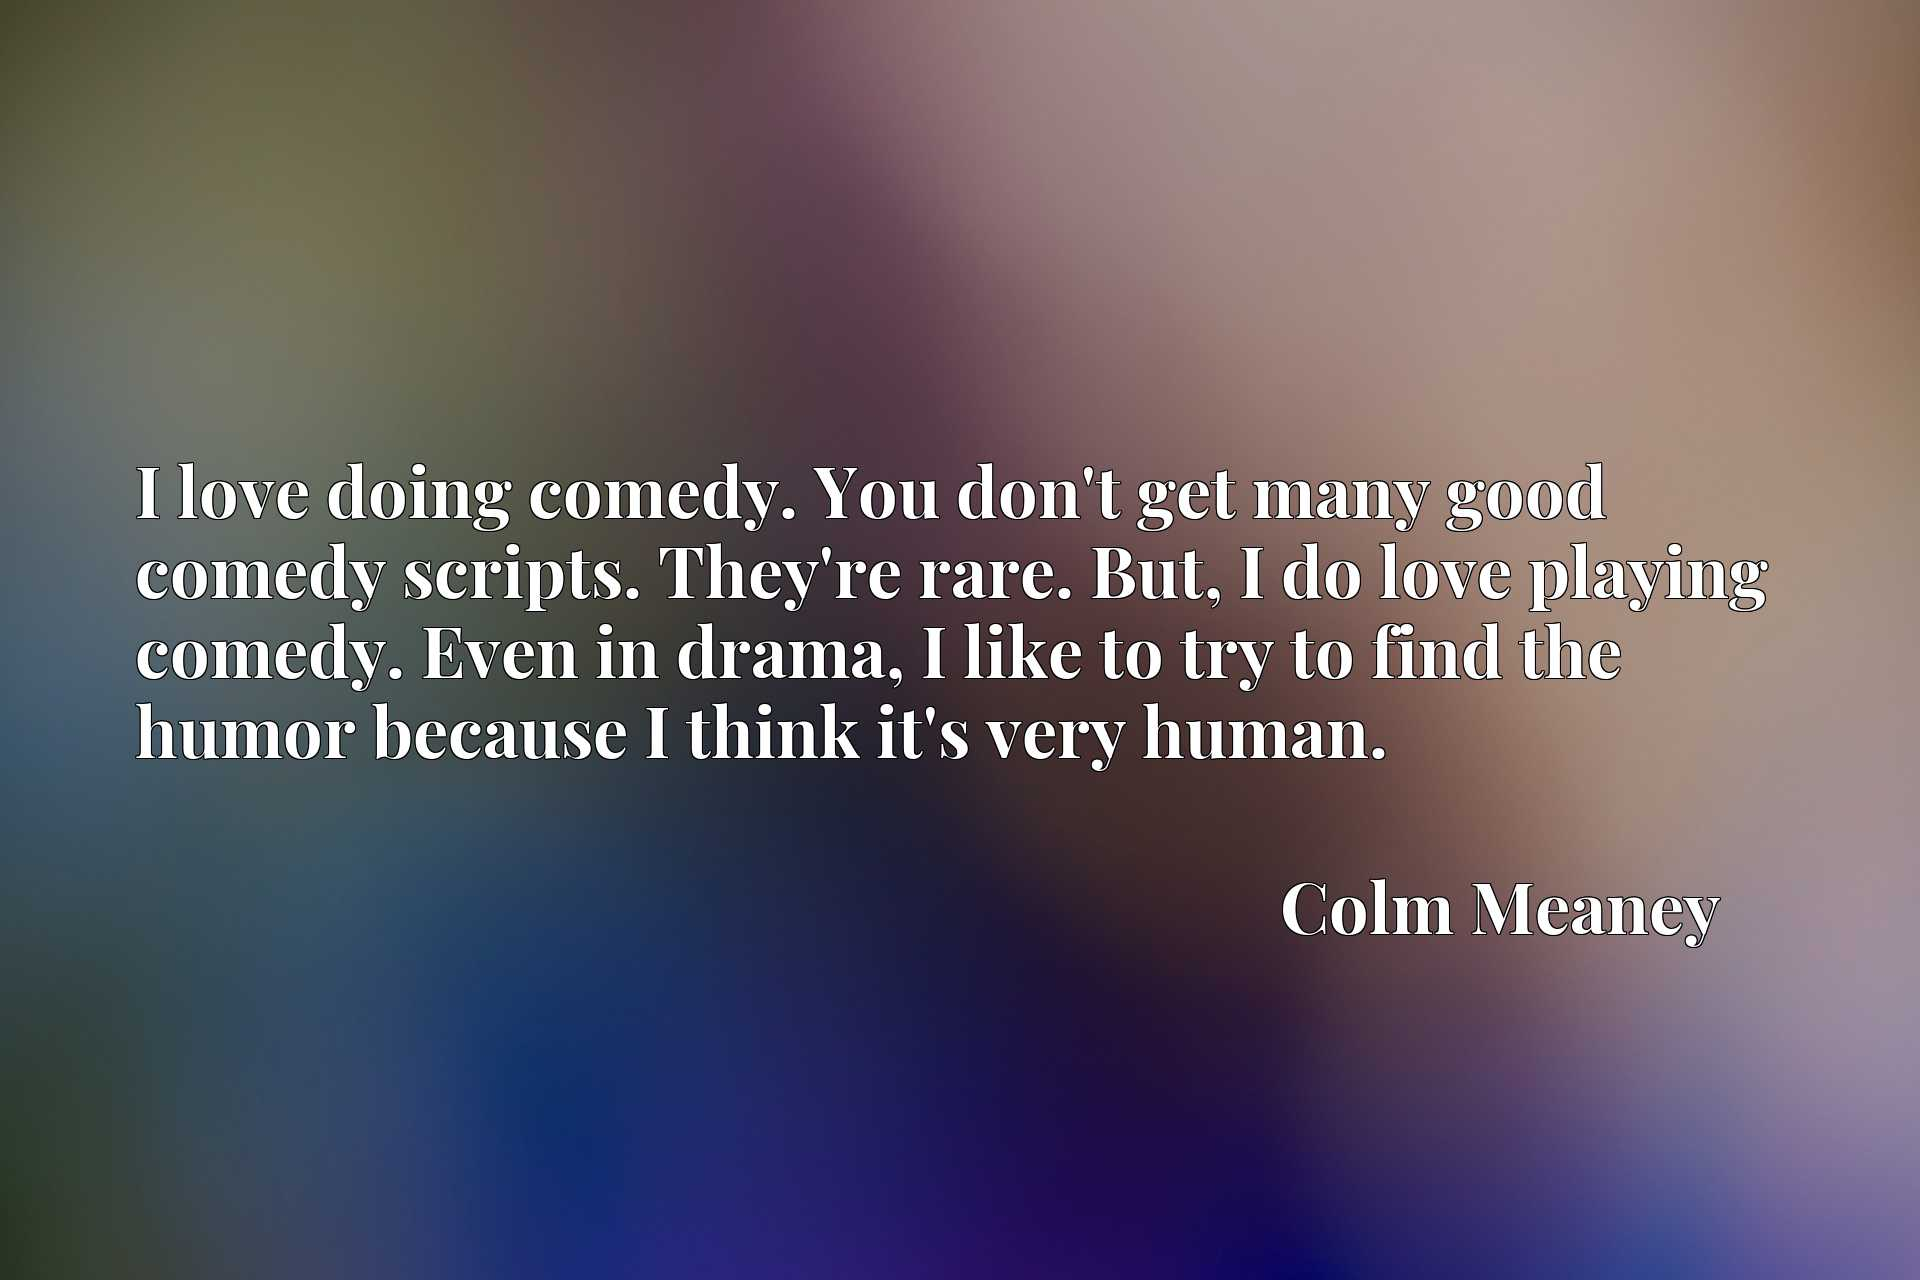 I love doing comedy. You don't get many good comedy scripts. They're rare. But, I do love playing comedy. Even in drama, I like to try to find the humor because I think it's very human.